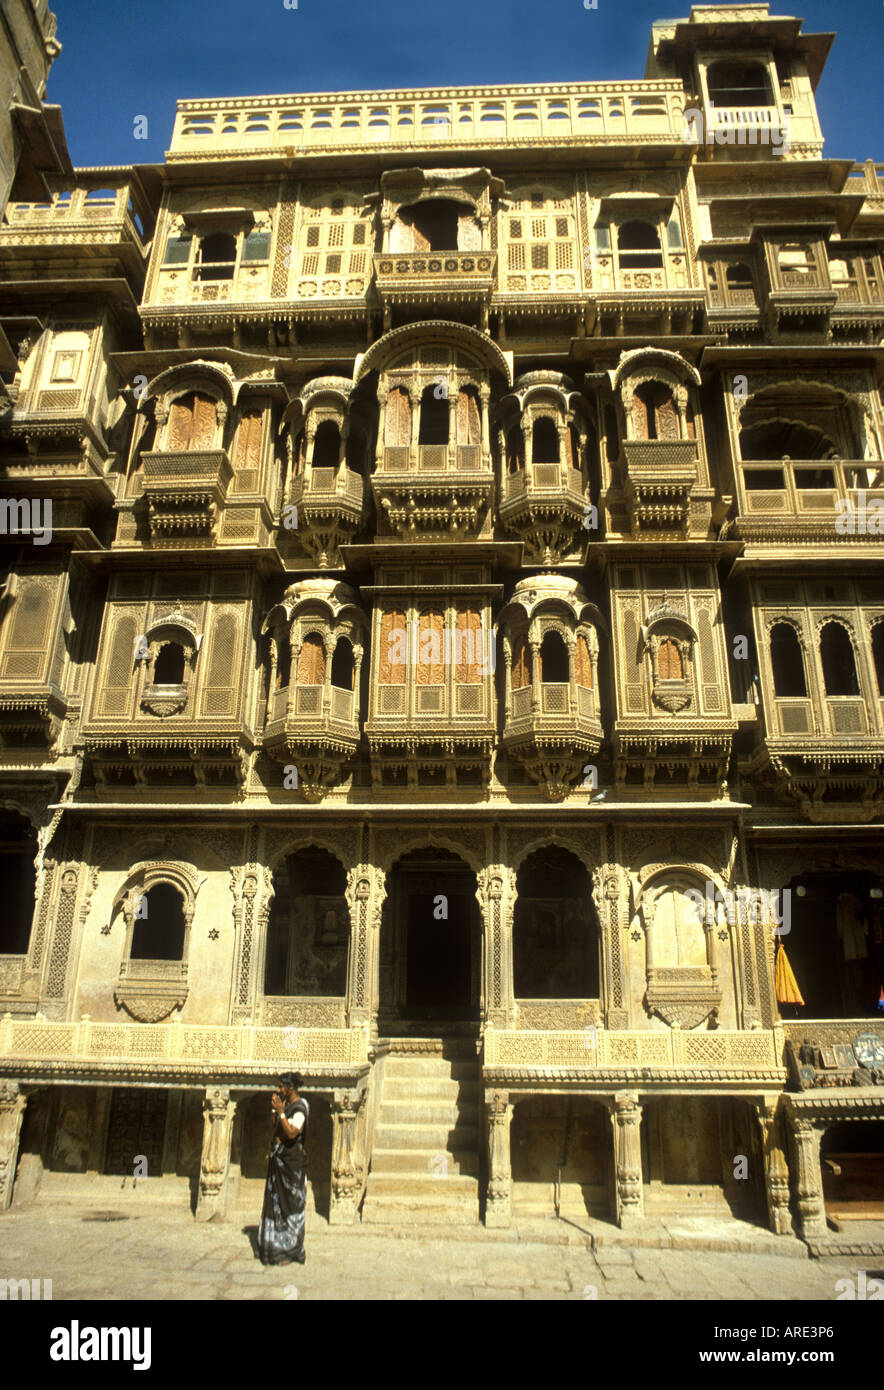 exquisitely Traditionally carved sandstone haveli (merchants house) in Jaiselmar Rajasthan India - Stock Image